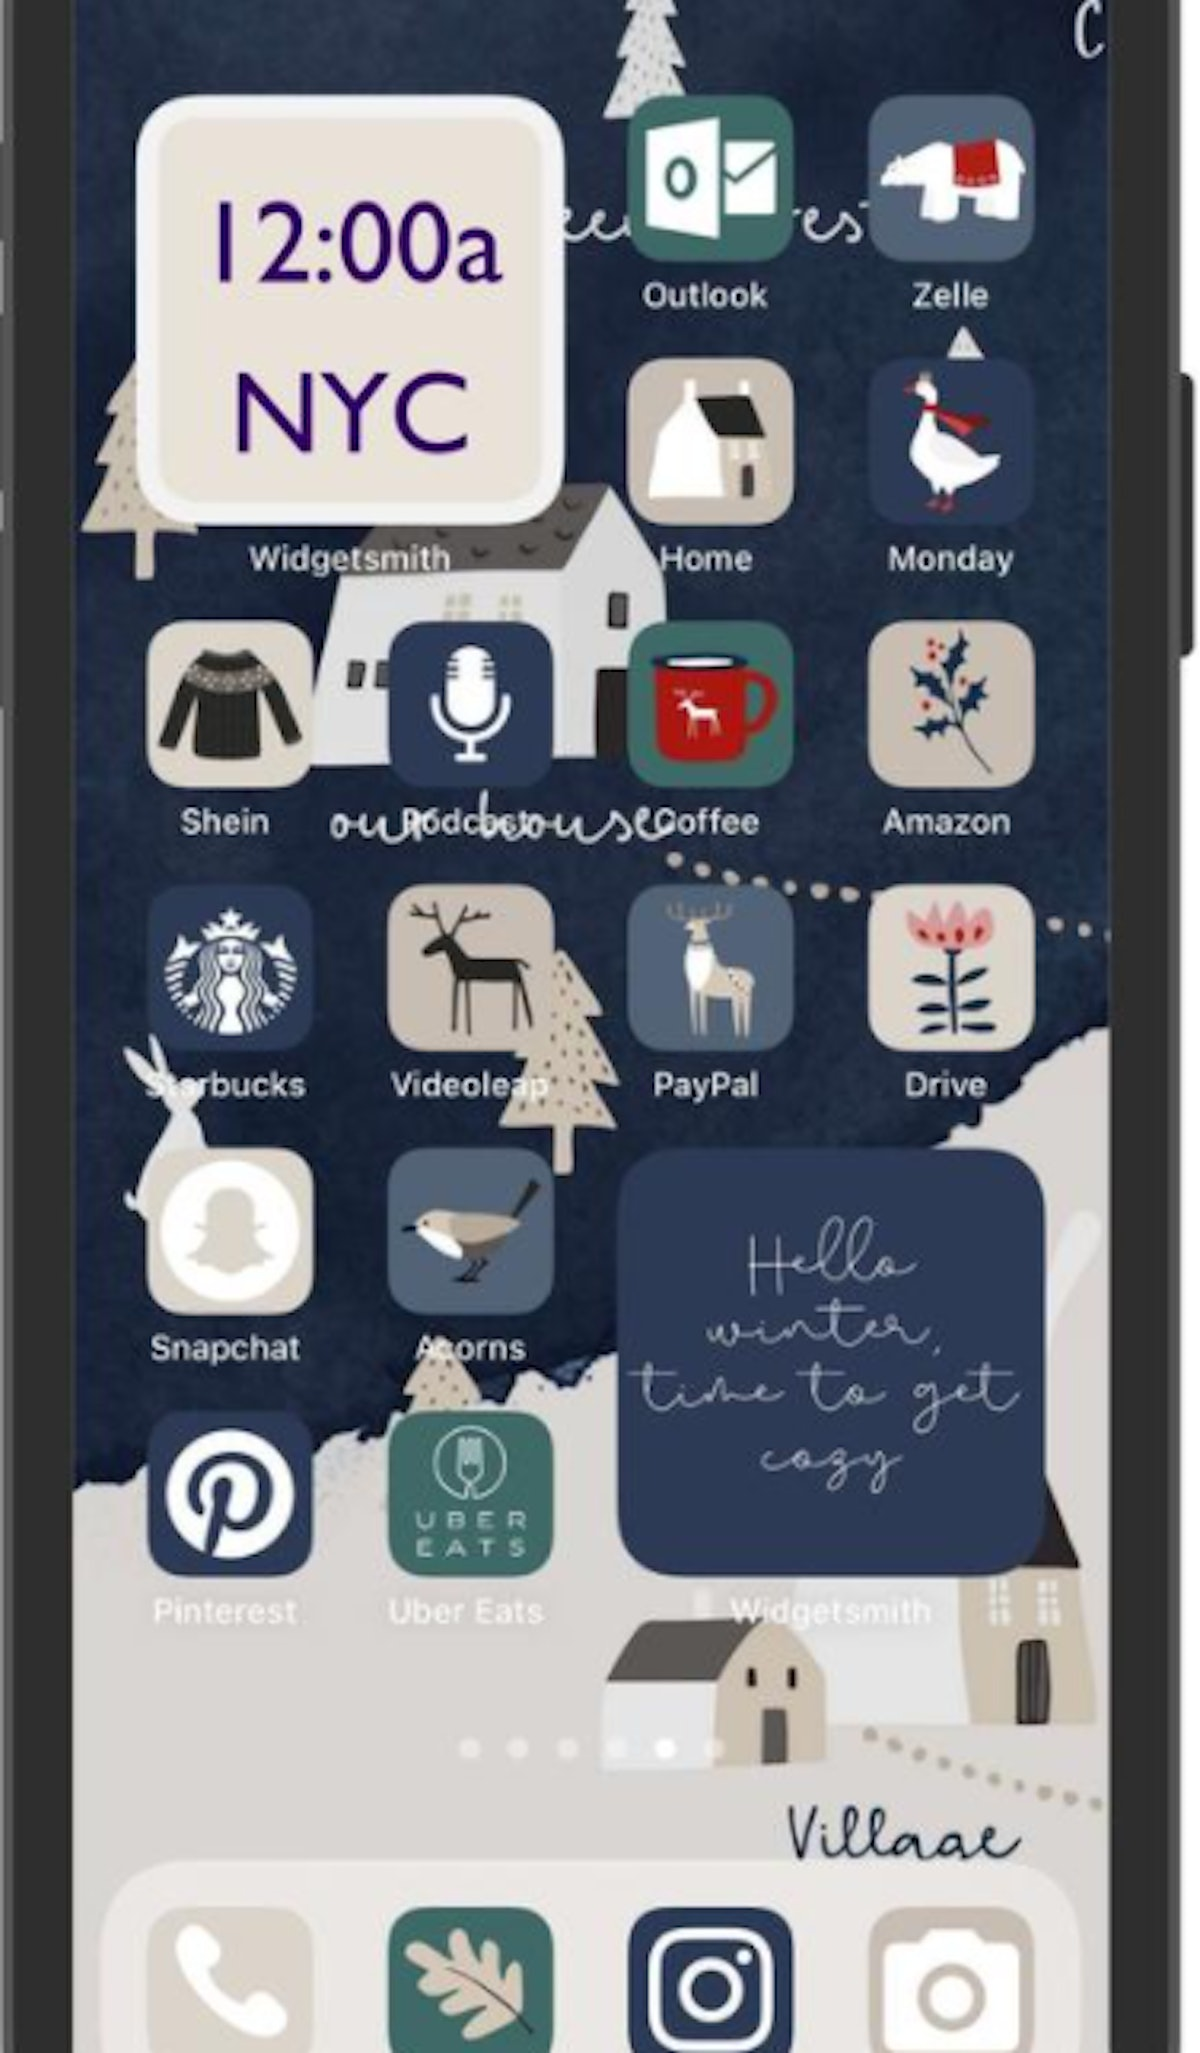 Winter Illustrations iOS 14 Home Screen Design Pack